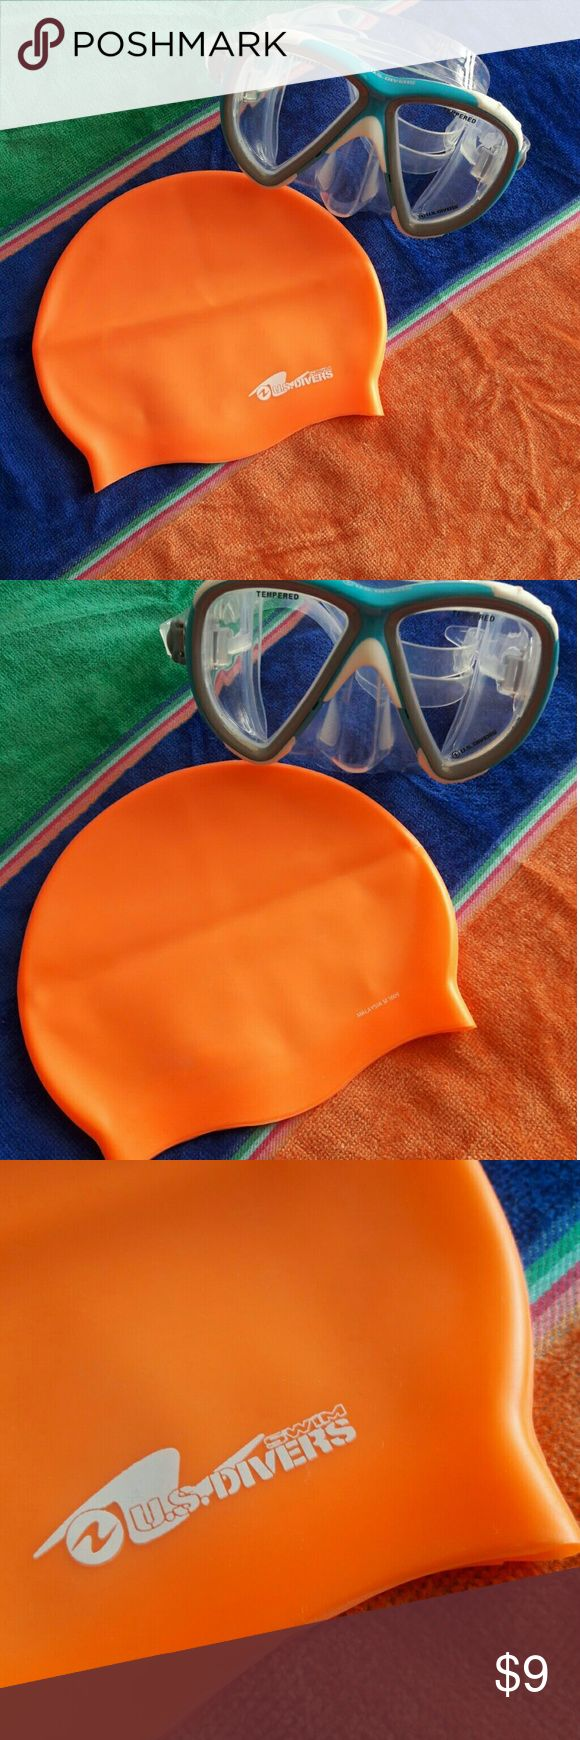 "US Divers Junior Silicone Swim Cap B017 This junior, one-size swim cap is constructed with silicone for maximum durability.  For ages 6 and up.  Mildly used.  Good condition.  Measurements:  Waist 8"" ~ Length 7"" ~ Size:  One size fits all ~ Color:  Glow orange. US Divers Swim"